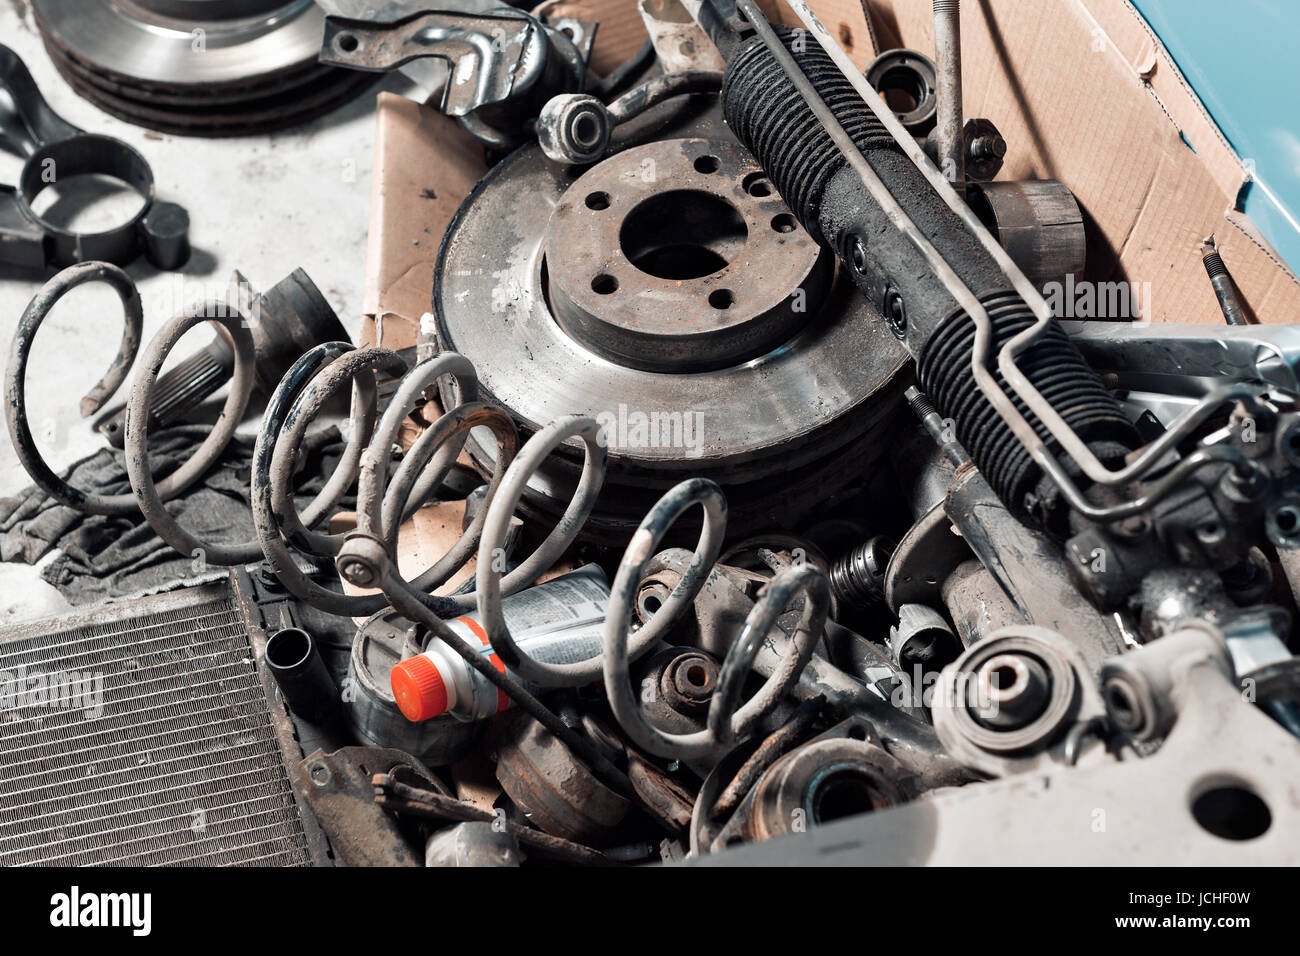 lot old car spare parts in service garage Stock Photo: 145443785 - Alamy